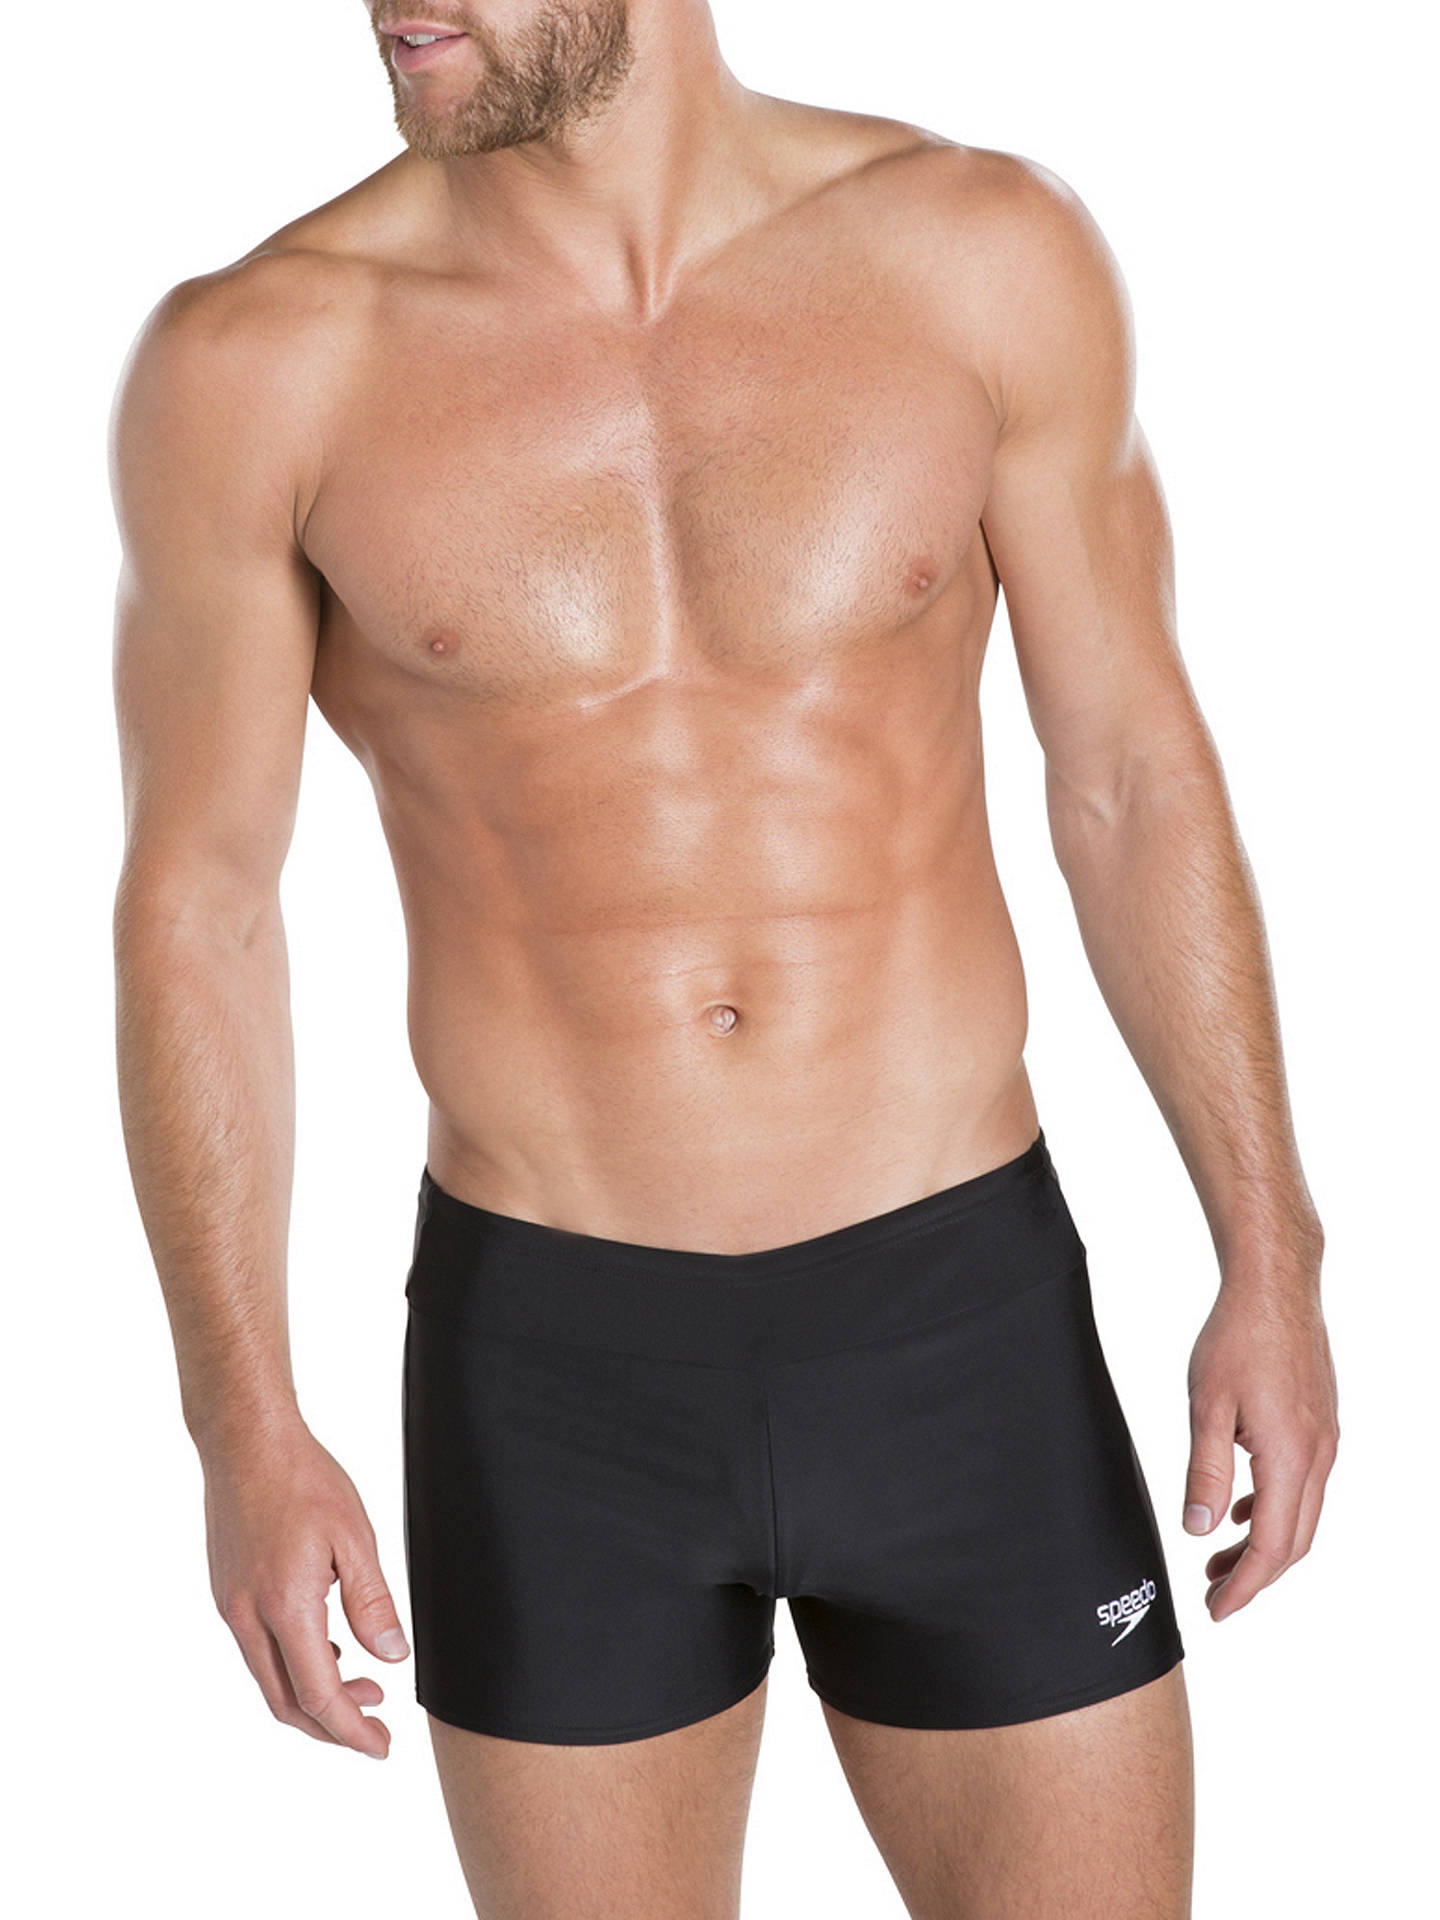 5c4f88cc5b2c7 Buy Speedo Houston Aquashort Swim Shorts, Black, 32 Online at johnlewis.com  ...